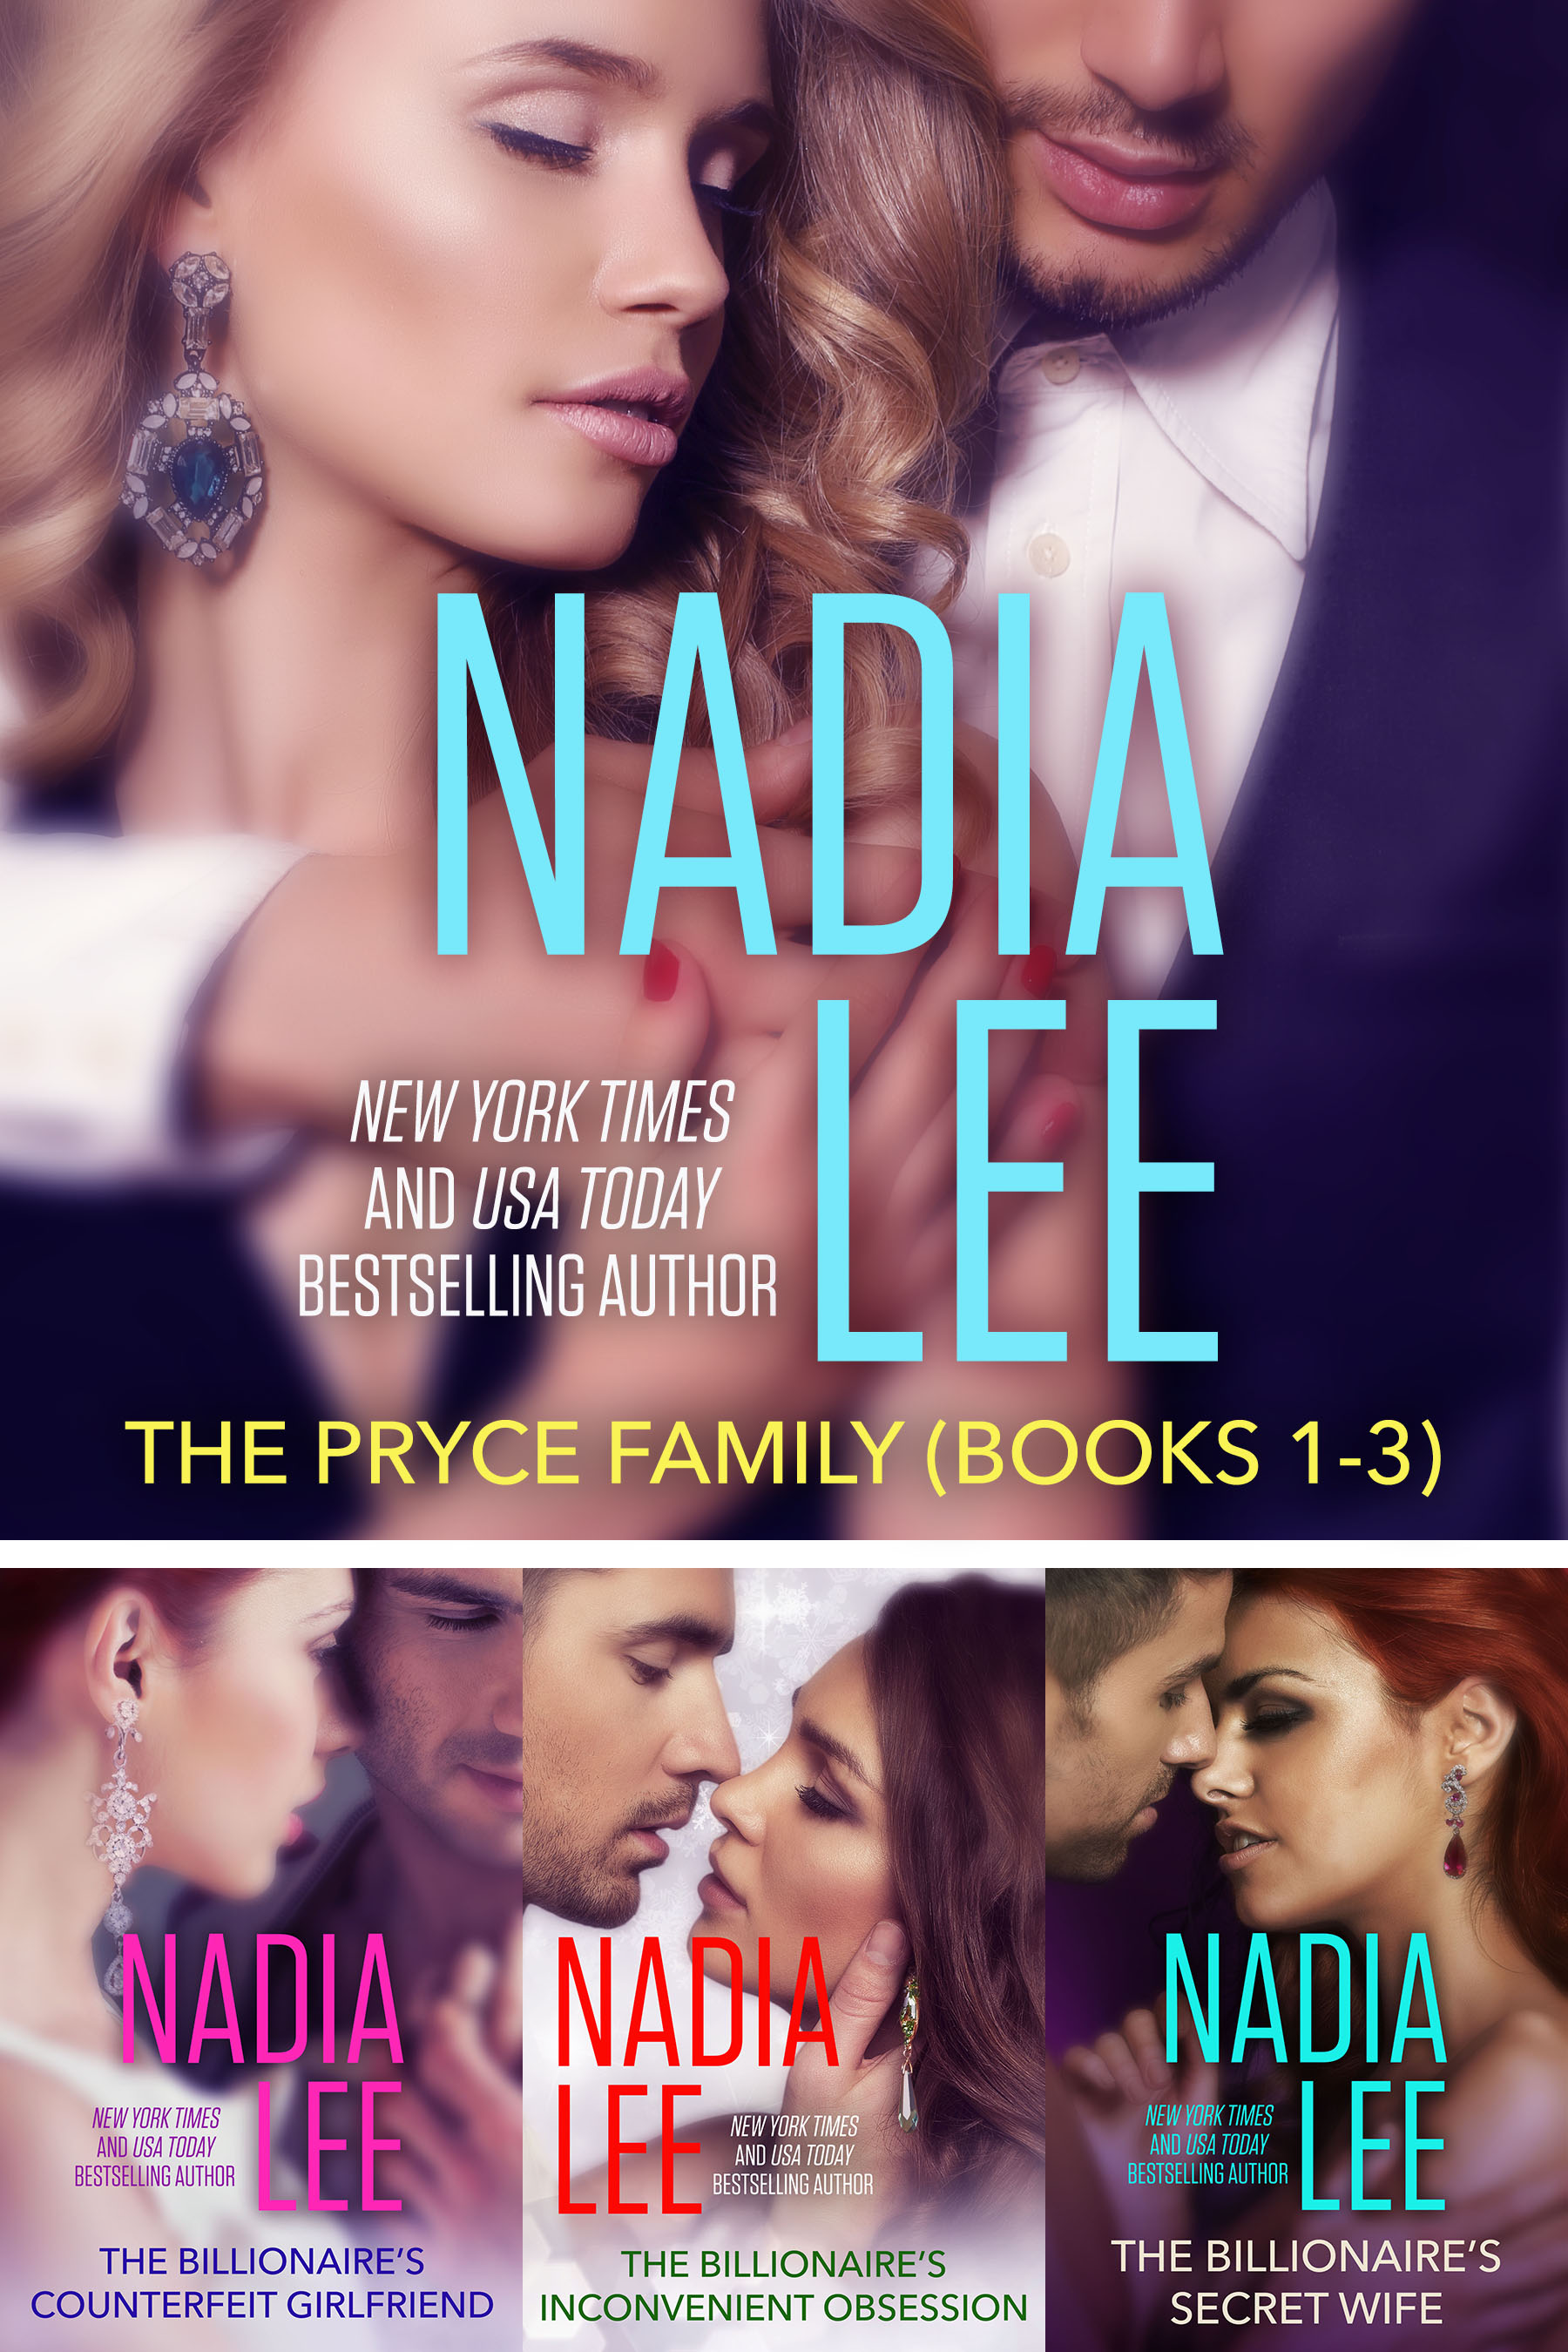 The Pryce Family (Books 1-3) | Nadia Lee | NYT and USA Today